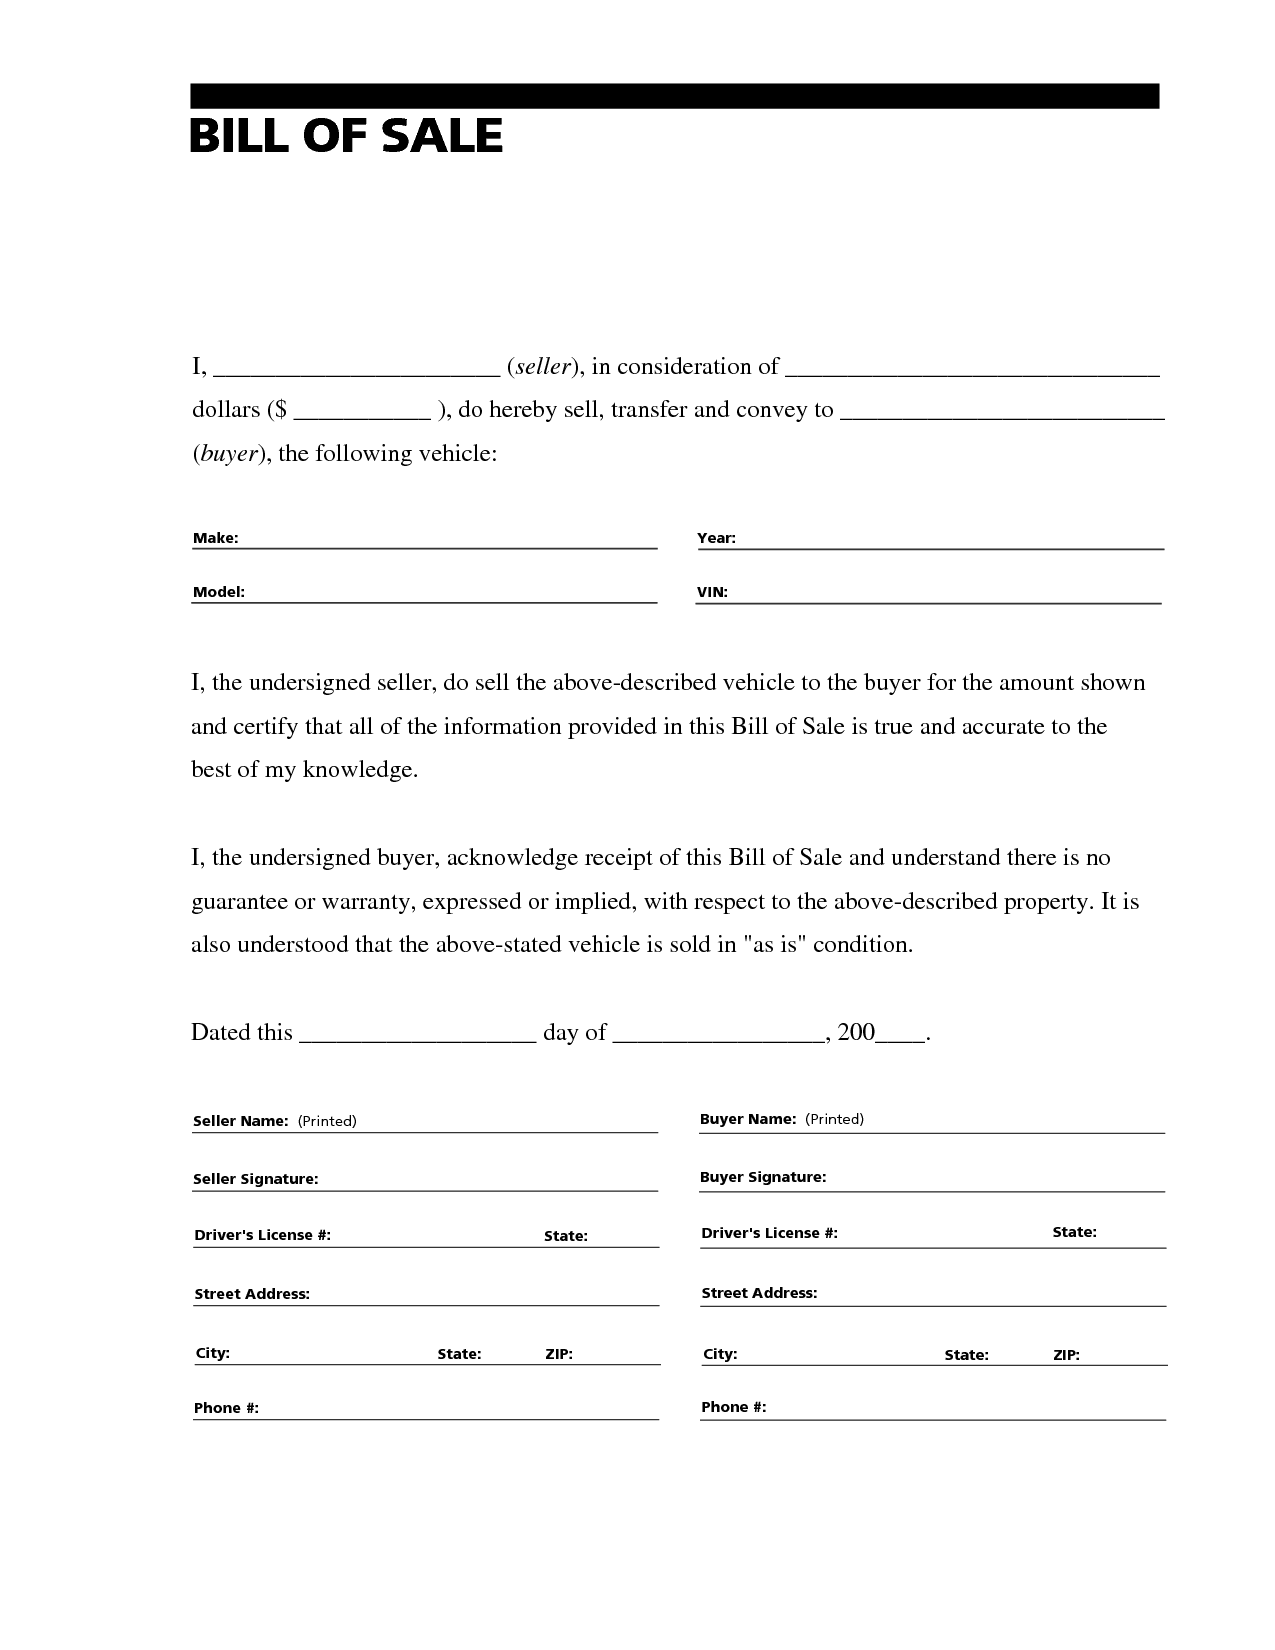 Vehicle Sale Contract Template marriage biodata format on real – Car Sale Agreement Contract